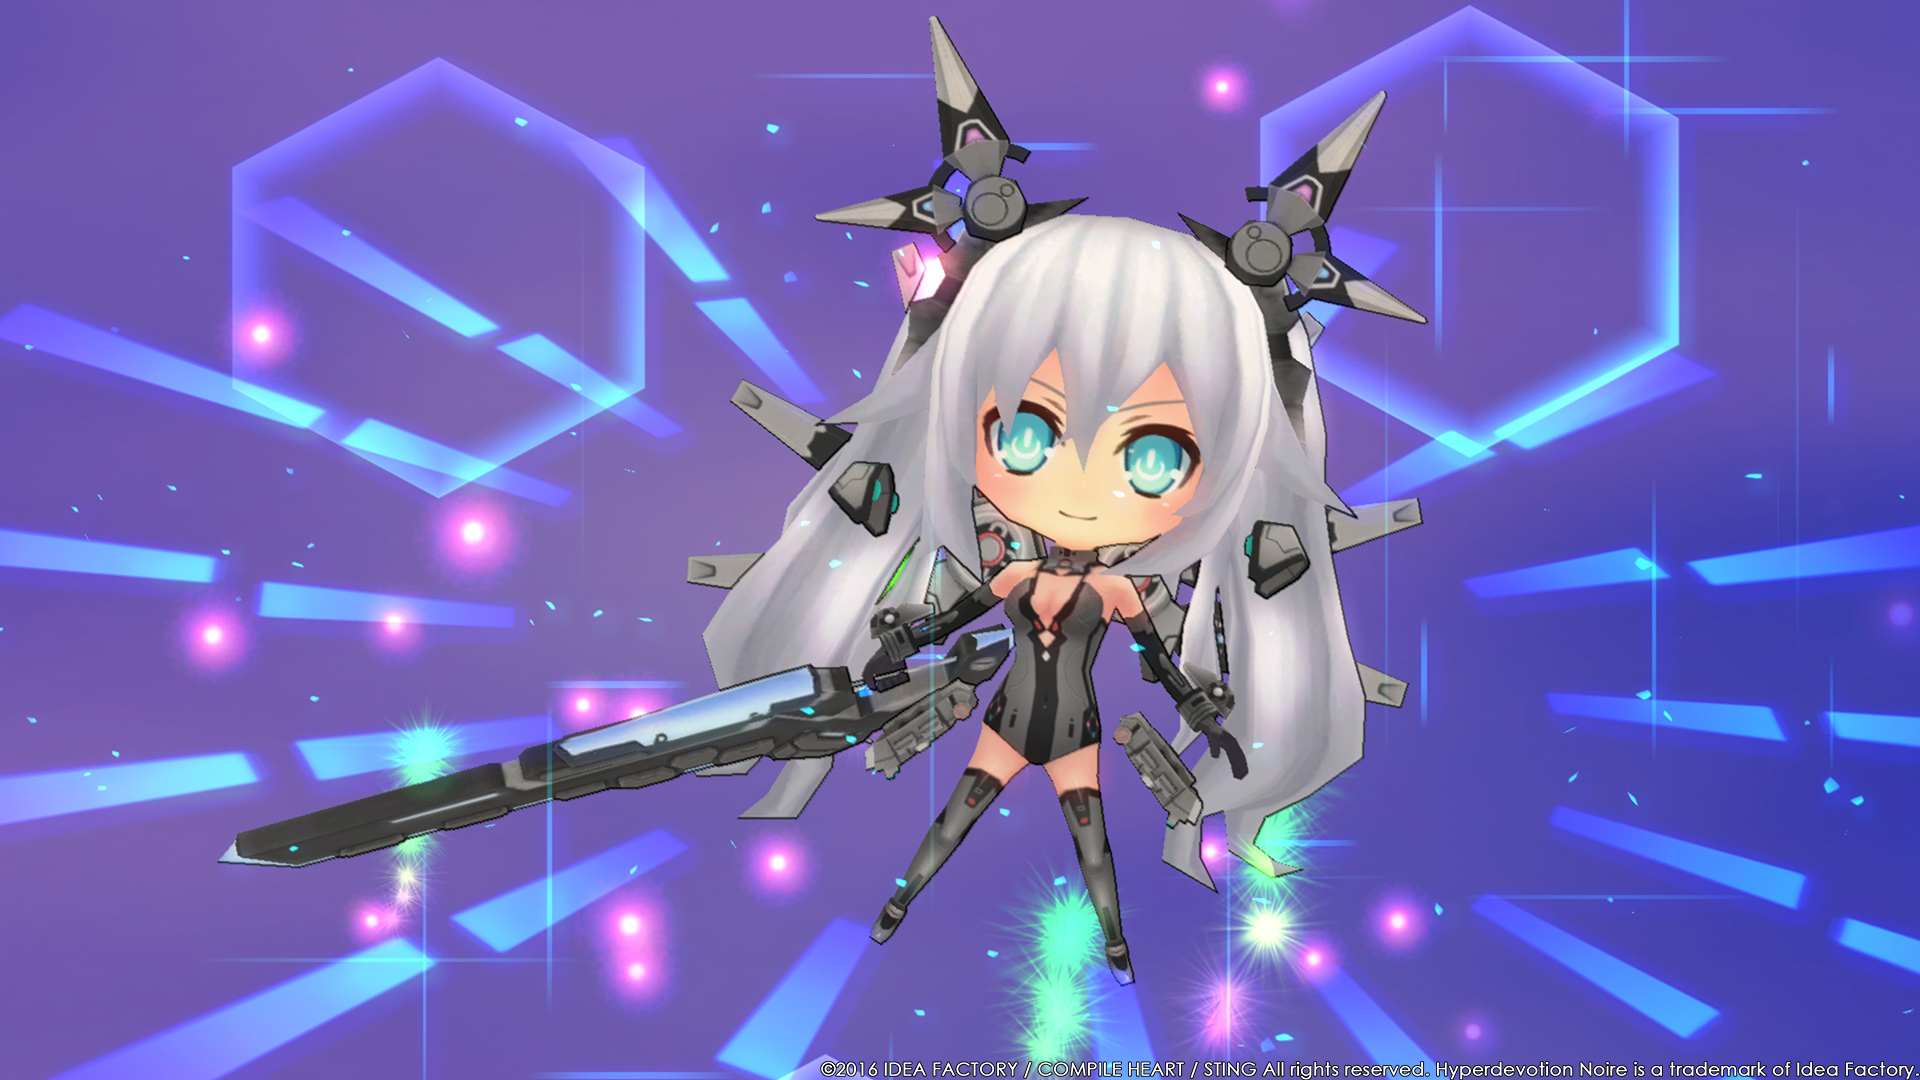 Hyperdevotion Noire Goddess Black Heart 4